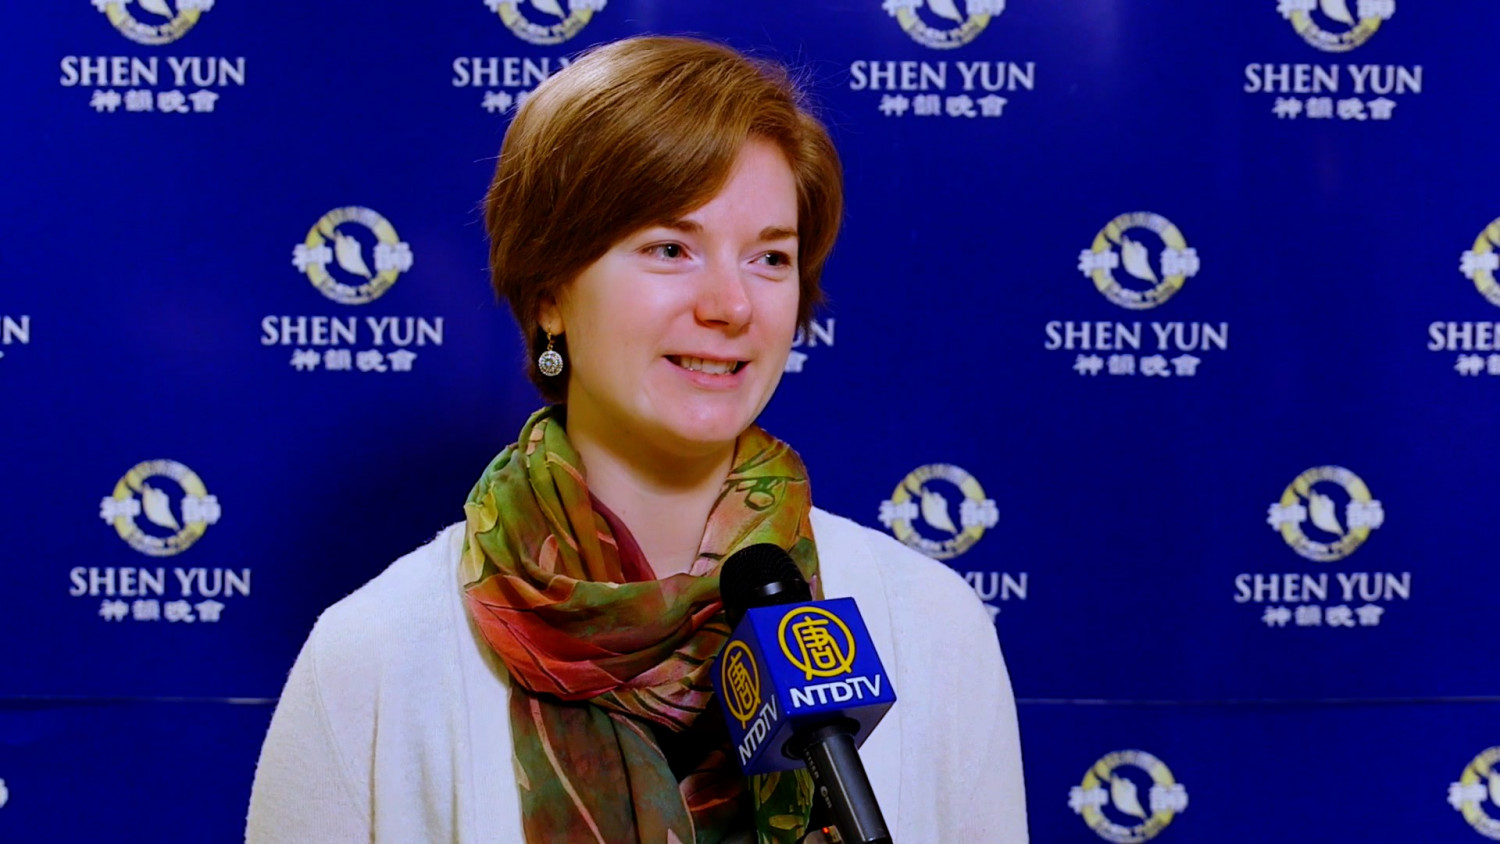 Shen Yun Inspires Vancouver Audiences With Scenes of the Creator